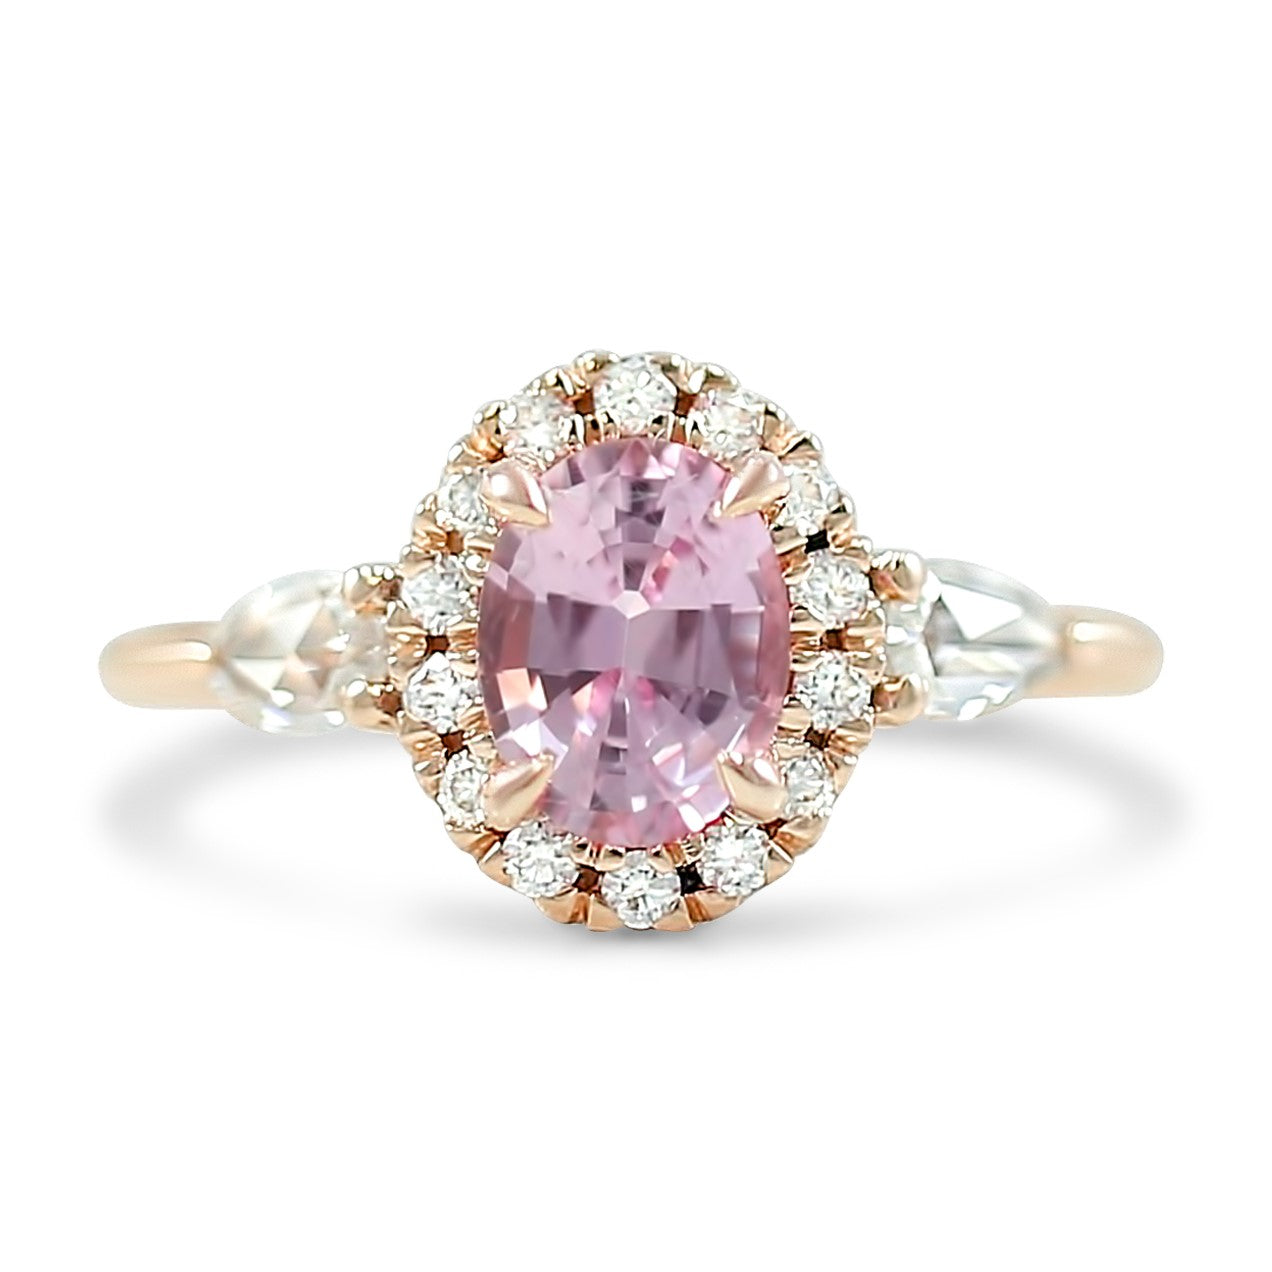 1.31ct pink oval sapphire set in 14k rose gold with a diamond halo and pear shaped diamond side stones